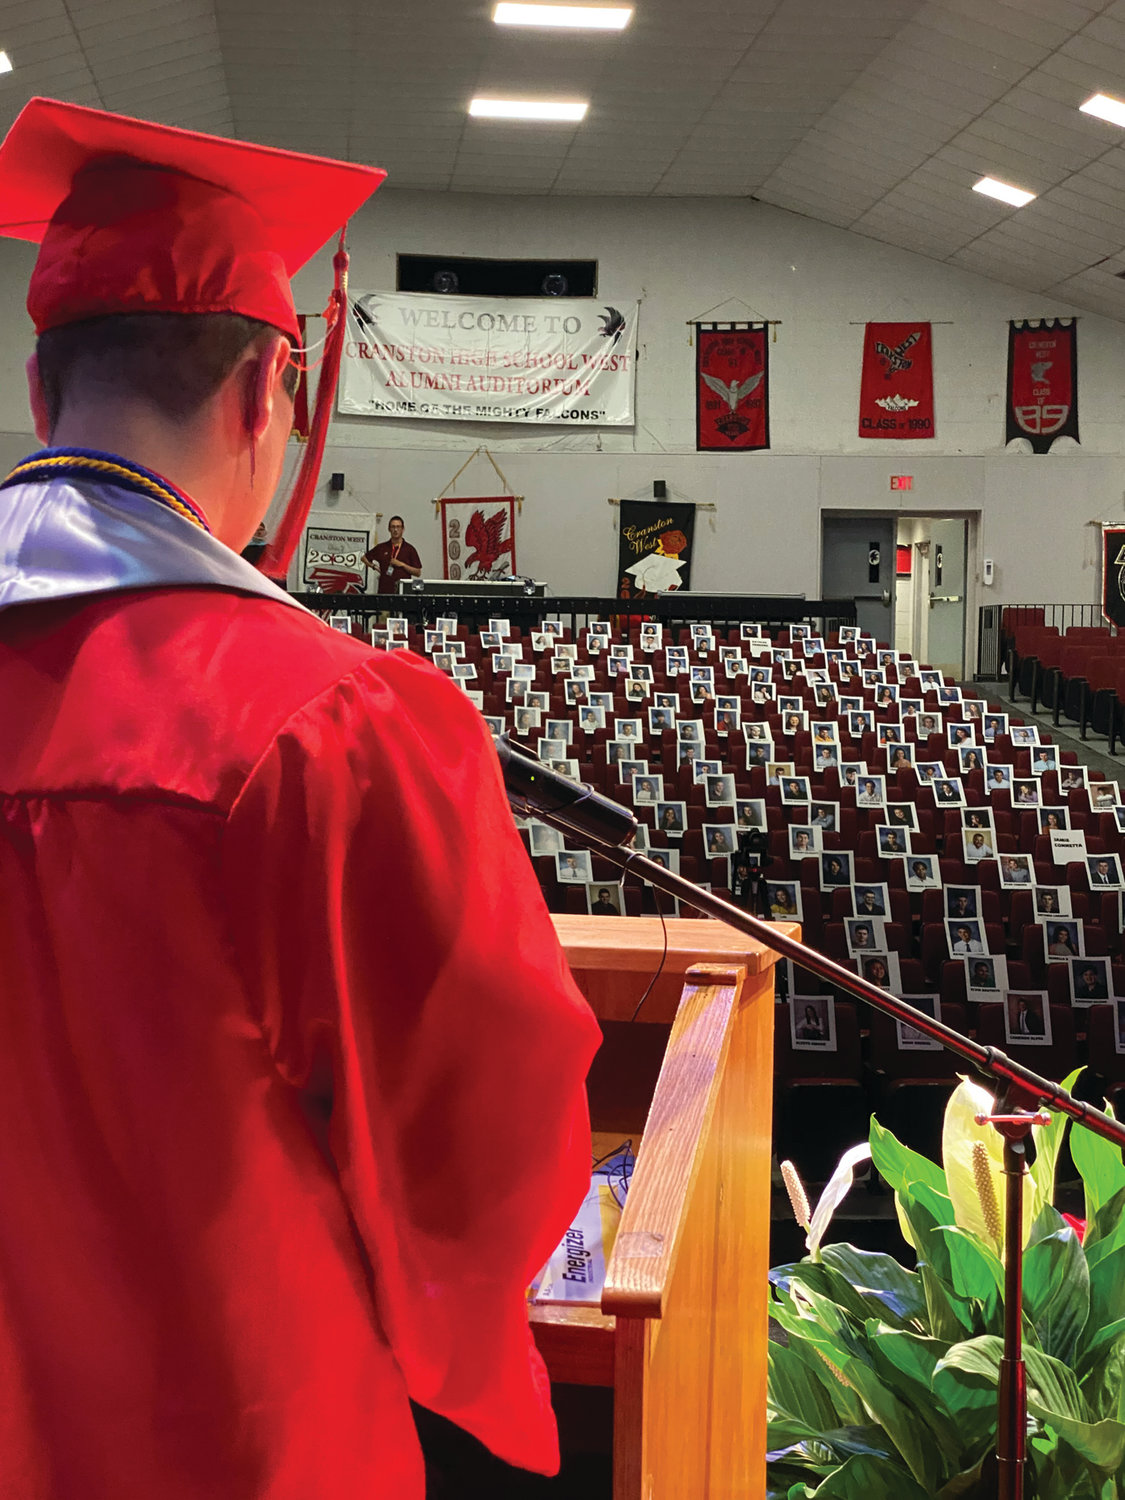 'YOU ARE ALL HERE WITH ME': Daniel Marella, salutatorian and president of Cranston High School West's class of 2020, delivers his remarks before images of his classmates in the school's Alumni Auditorium in early June. Marella, who spoke as part of a virtual graduation ceremony that was compiled in a video presentation that debuted over the weekend, at one point walked through the chairs to speak about several of his peers and their contributions to the school community.